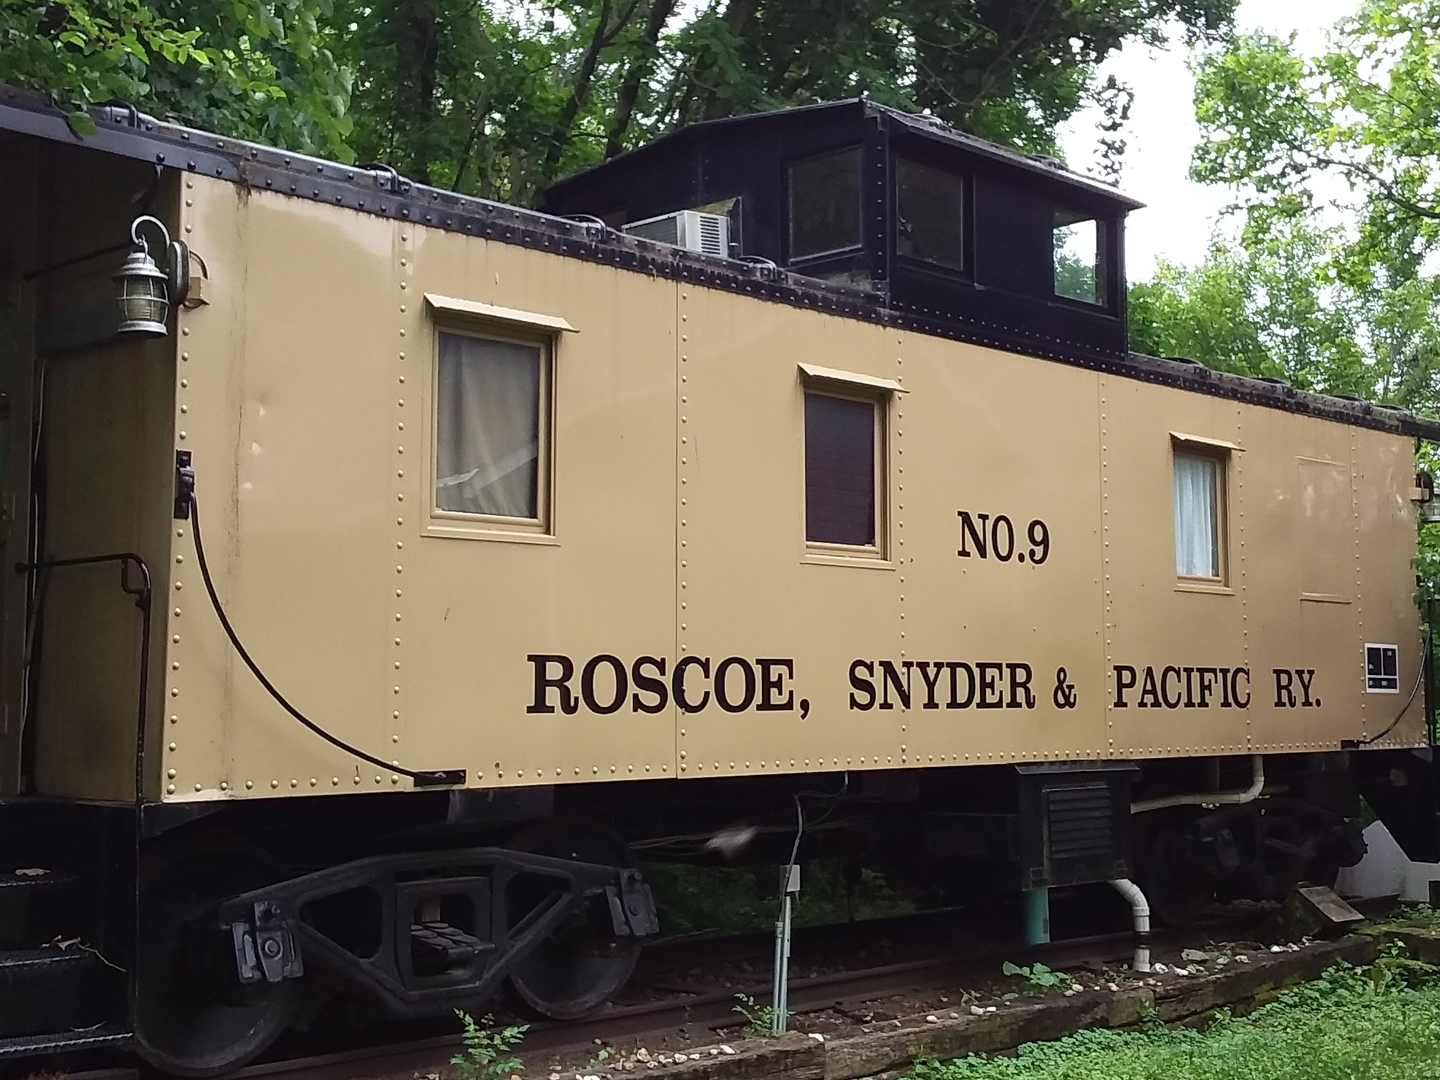 A train is parked on the side at Mason House Inn & Caboose Cottage.